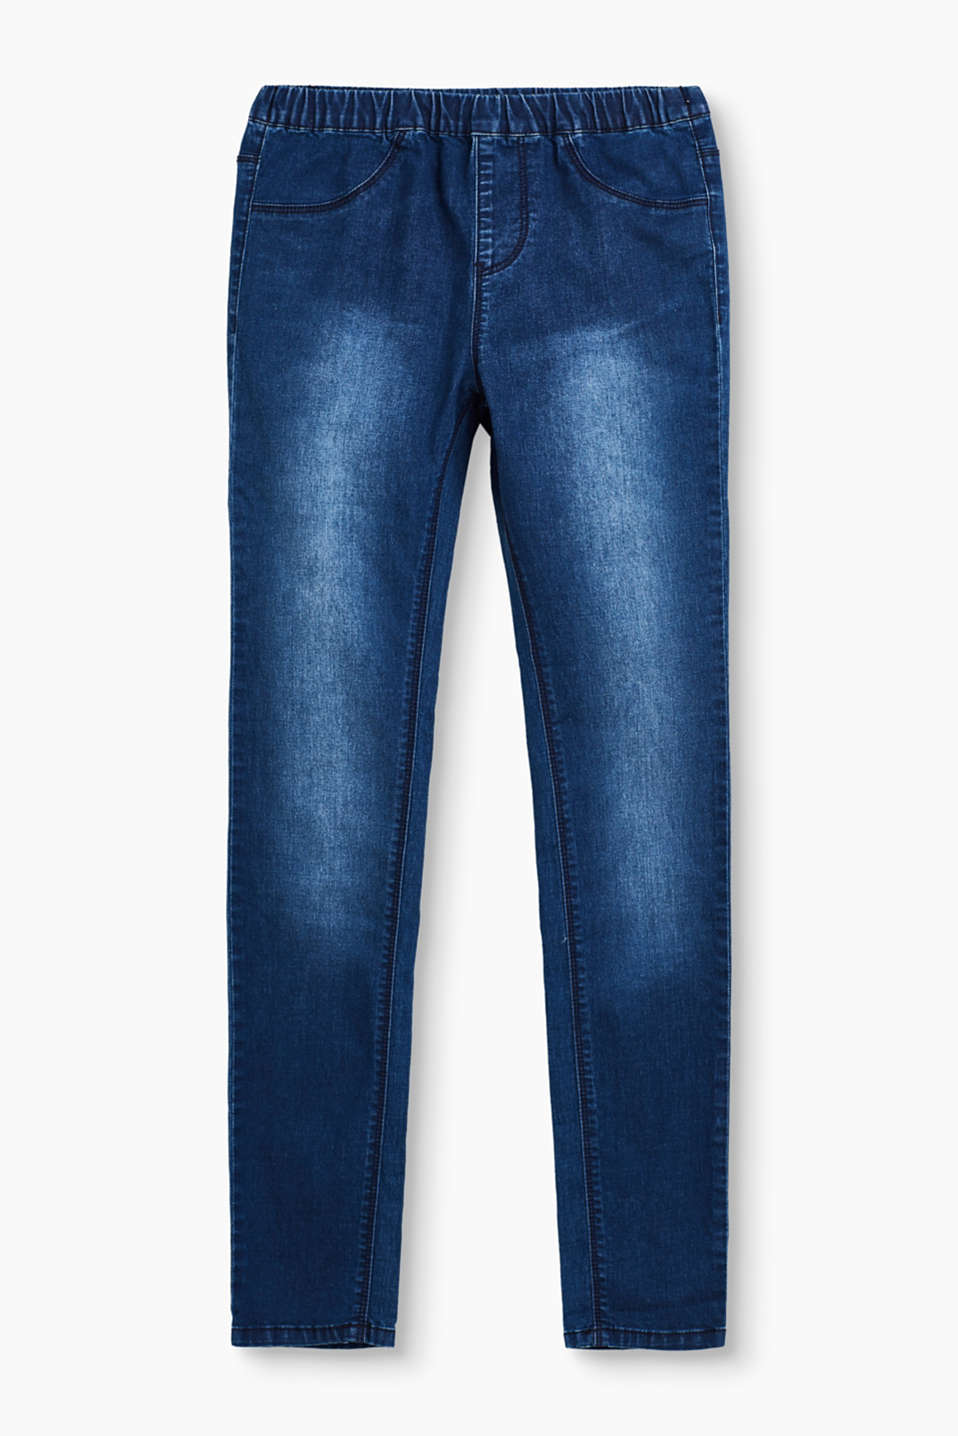 Esprit - Jegging en denim stretch